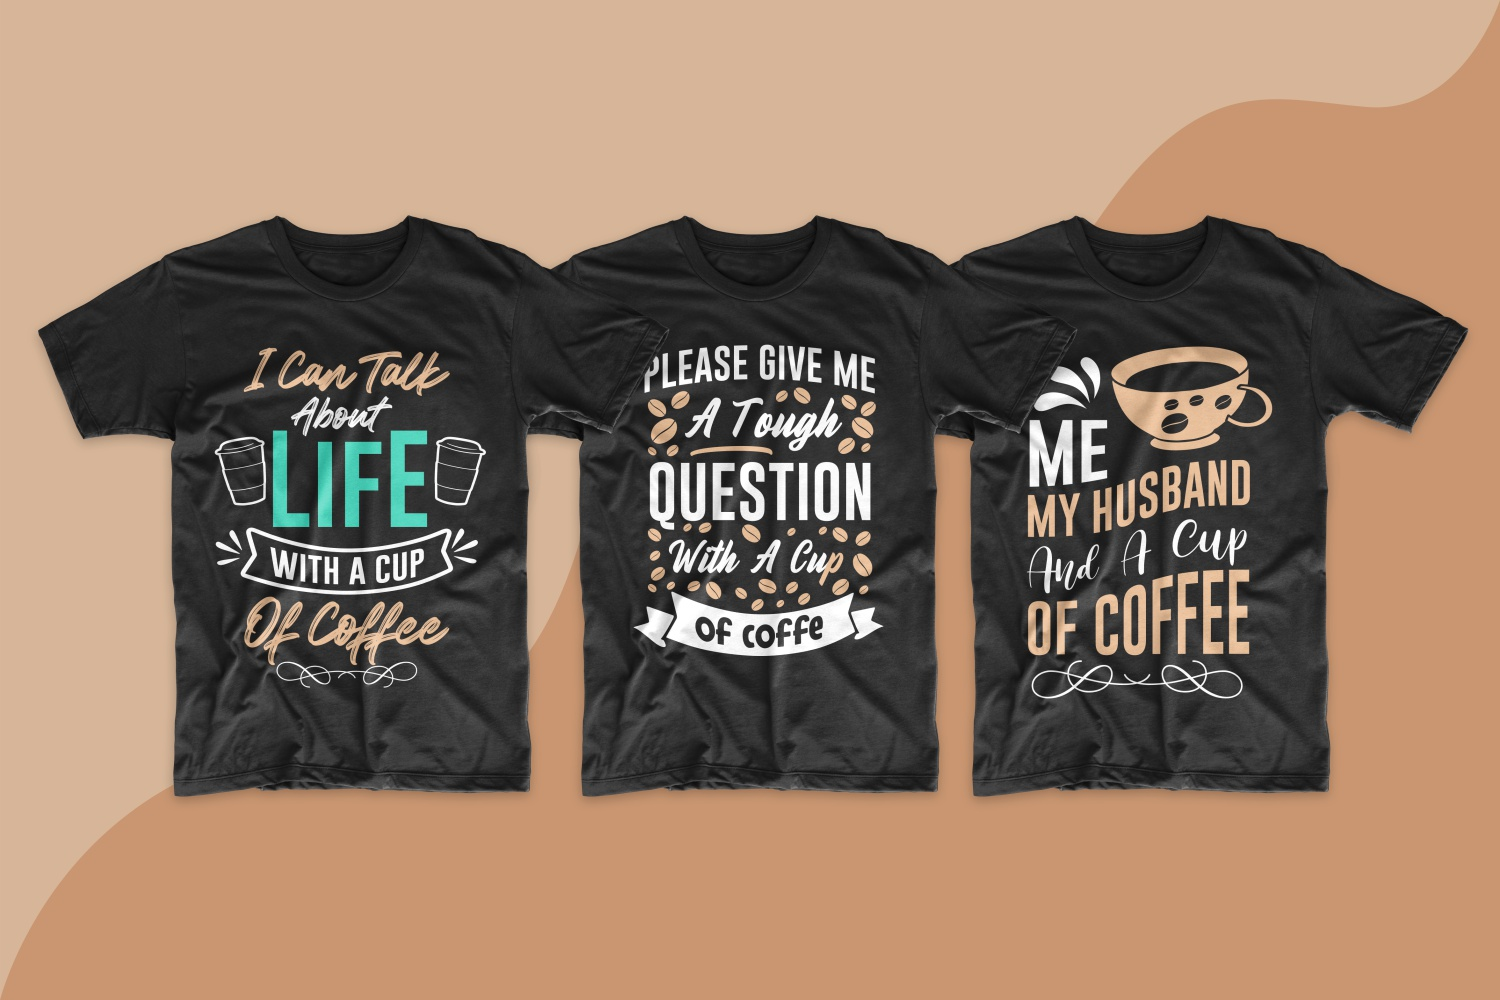 T-shirts for men with a classic cut in black with coffee inscriptions.